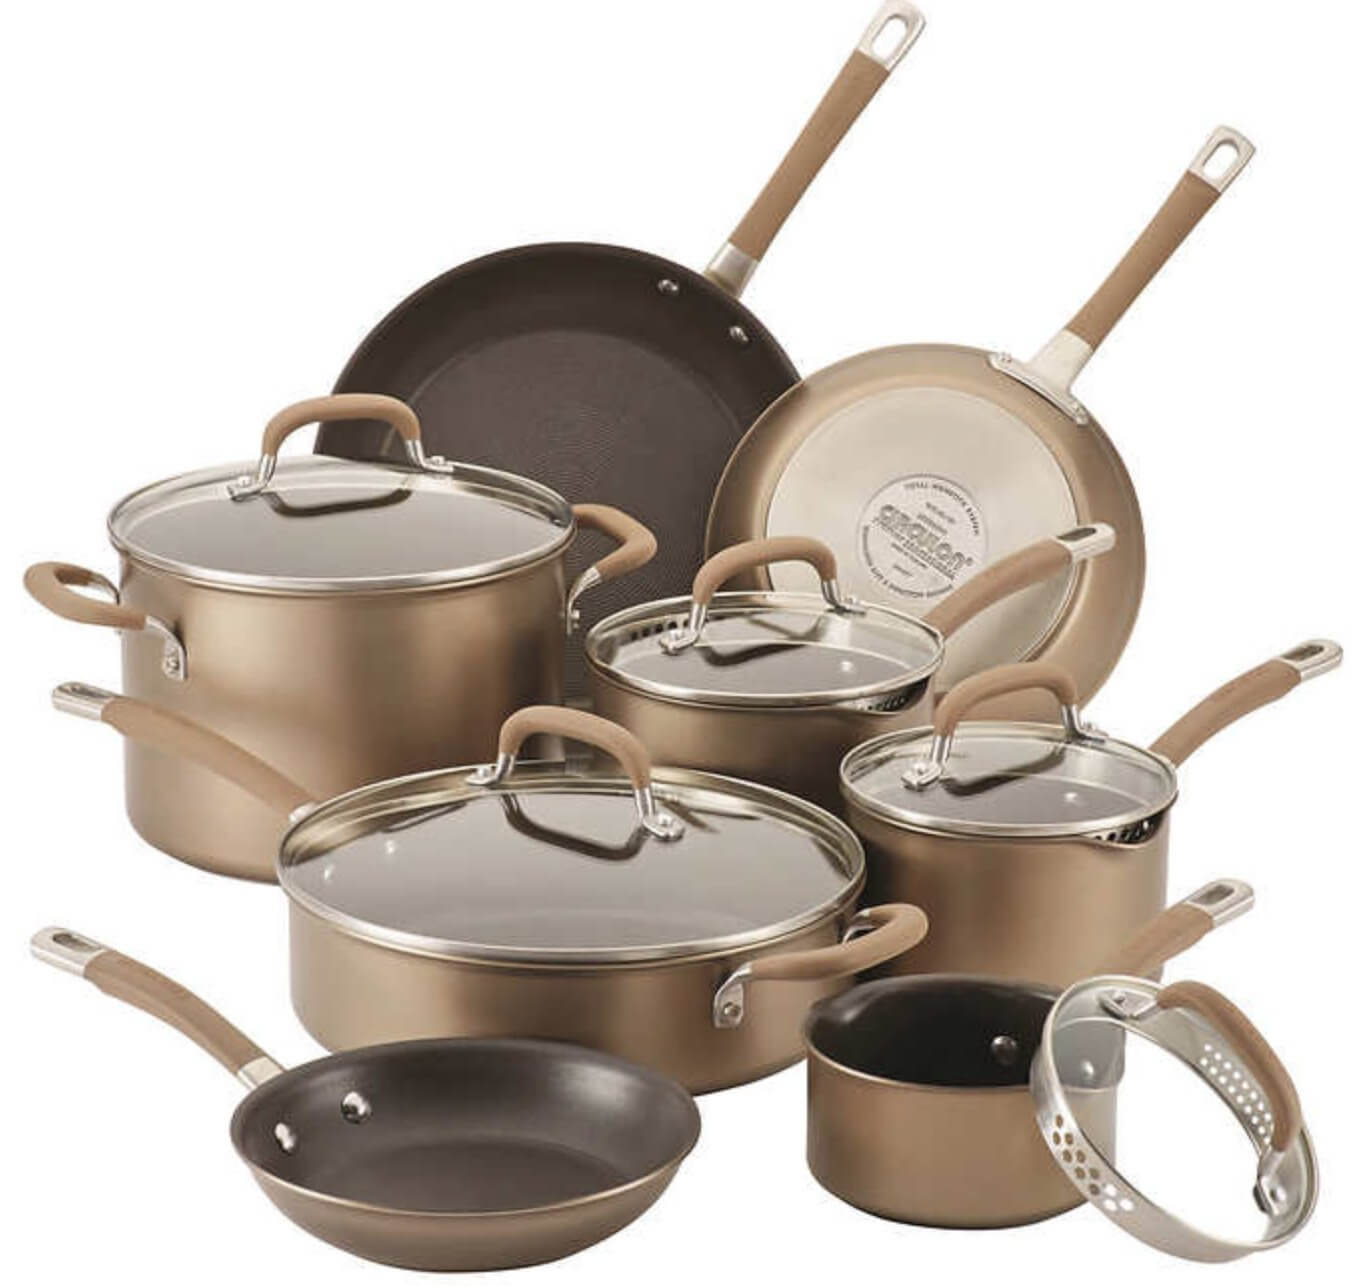 Circulon Premier Professional Hard Anodized Cookware Set with Stainless Steel Base